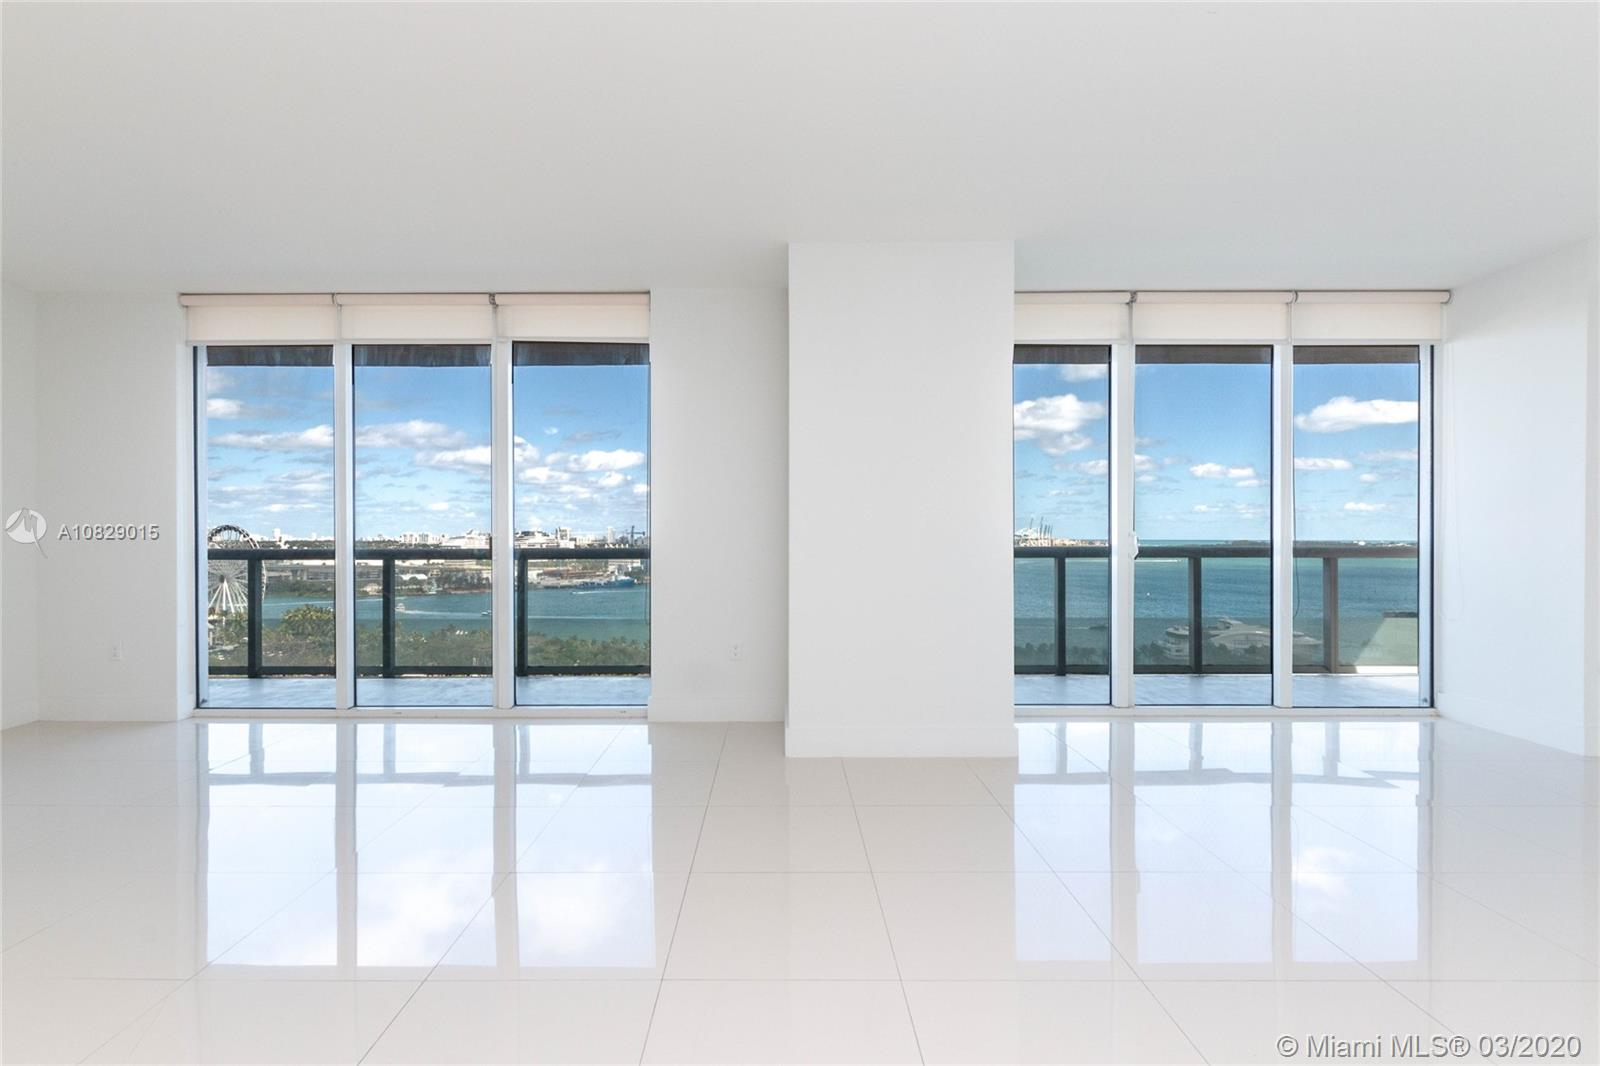 Incredible ocean views, overlooking Bayfront Park , the Port of Miami and South Beach! This spacious 3/2 corner unit has UPGRADED marble floors, Italian kitchen with stainless steal appliances, and wrap around balcony.  The building has great amenities that include gym, pilates, sauna, spa, party room, Olympic size heated pool with cabanas, formal and informal club house, 24 hour security, doorman, valet service and concierge!